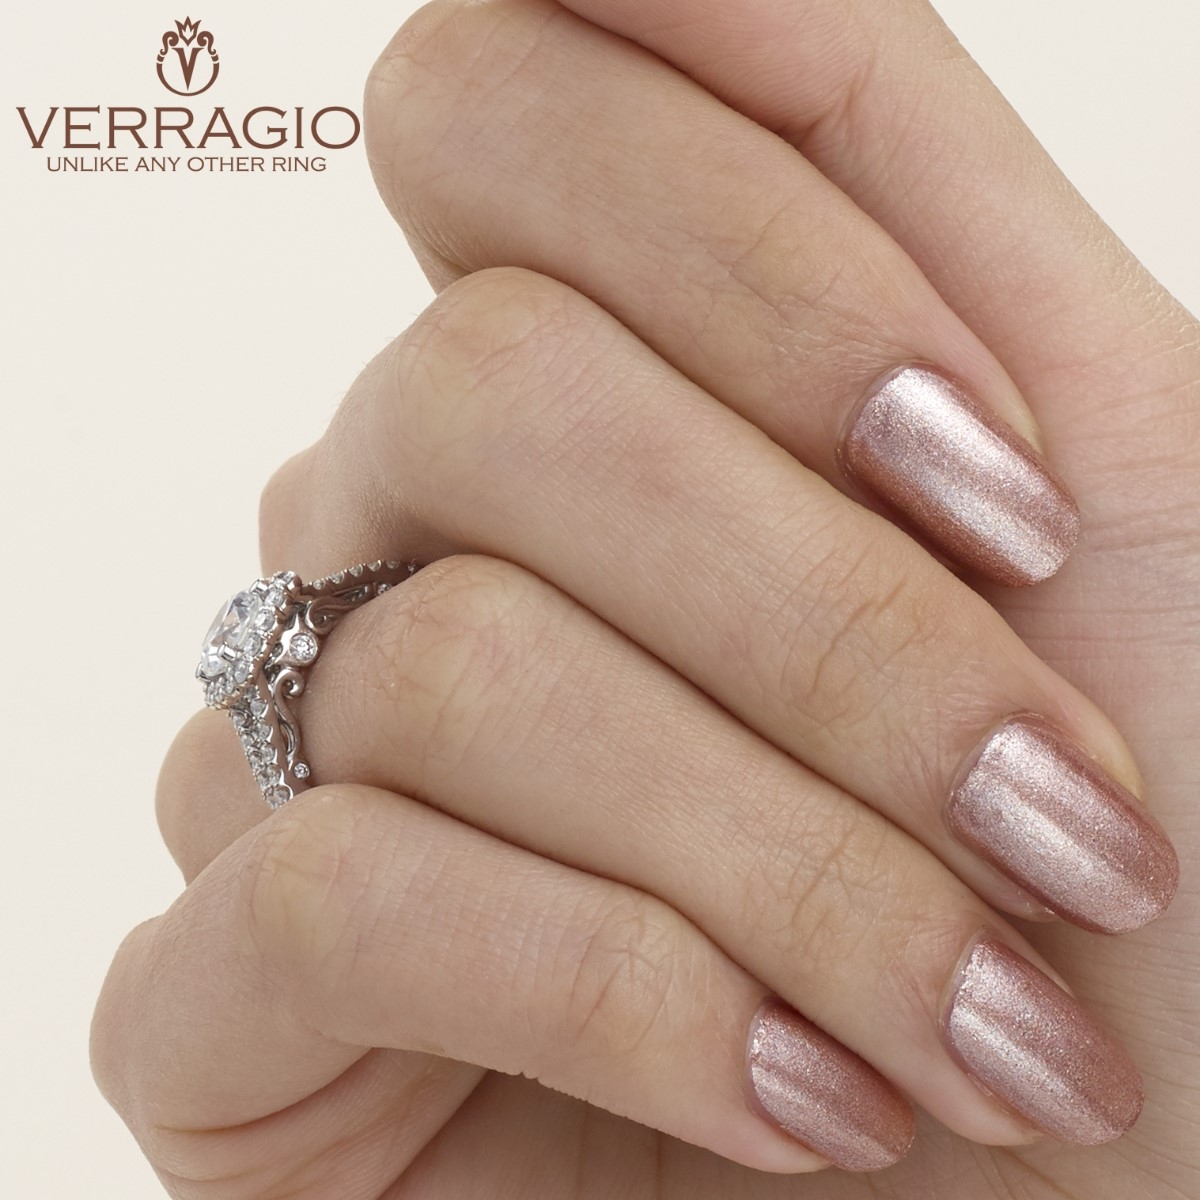 Verragio 18 Karat Insignia Engagement Ring INS-7046 Alternative View 3